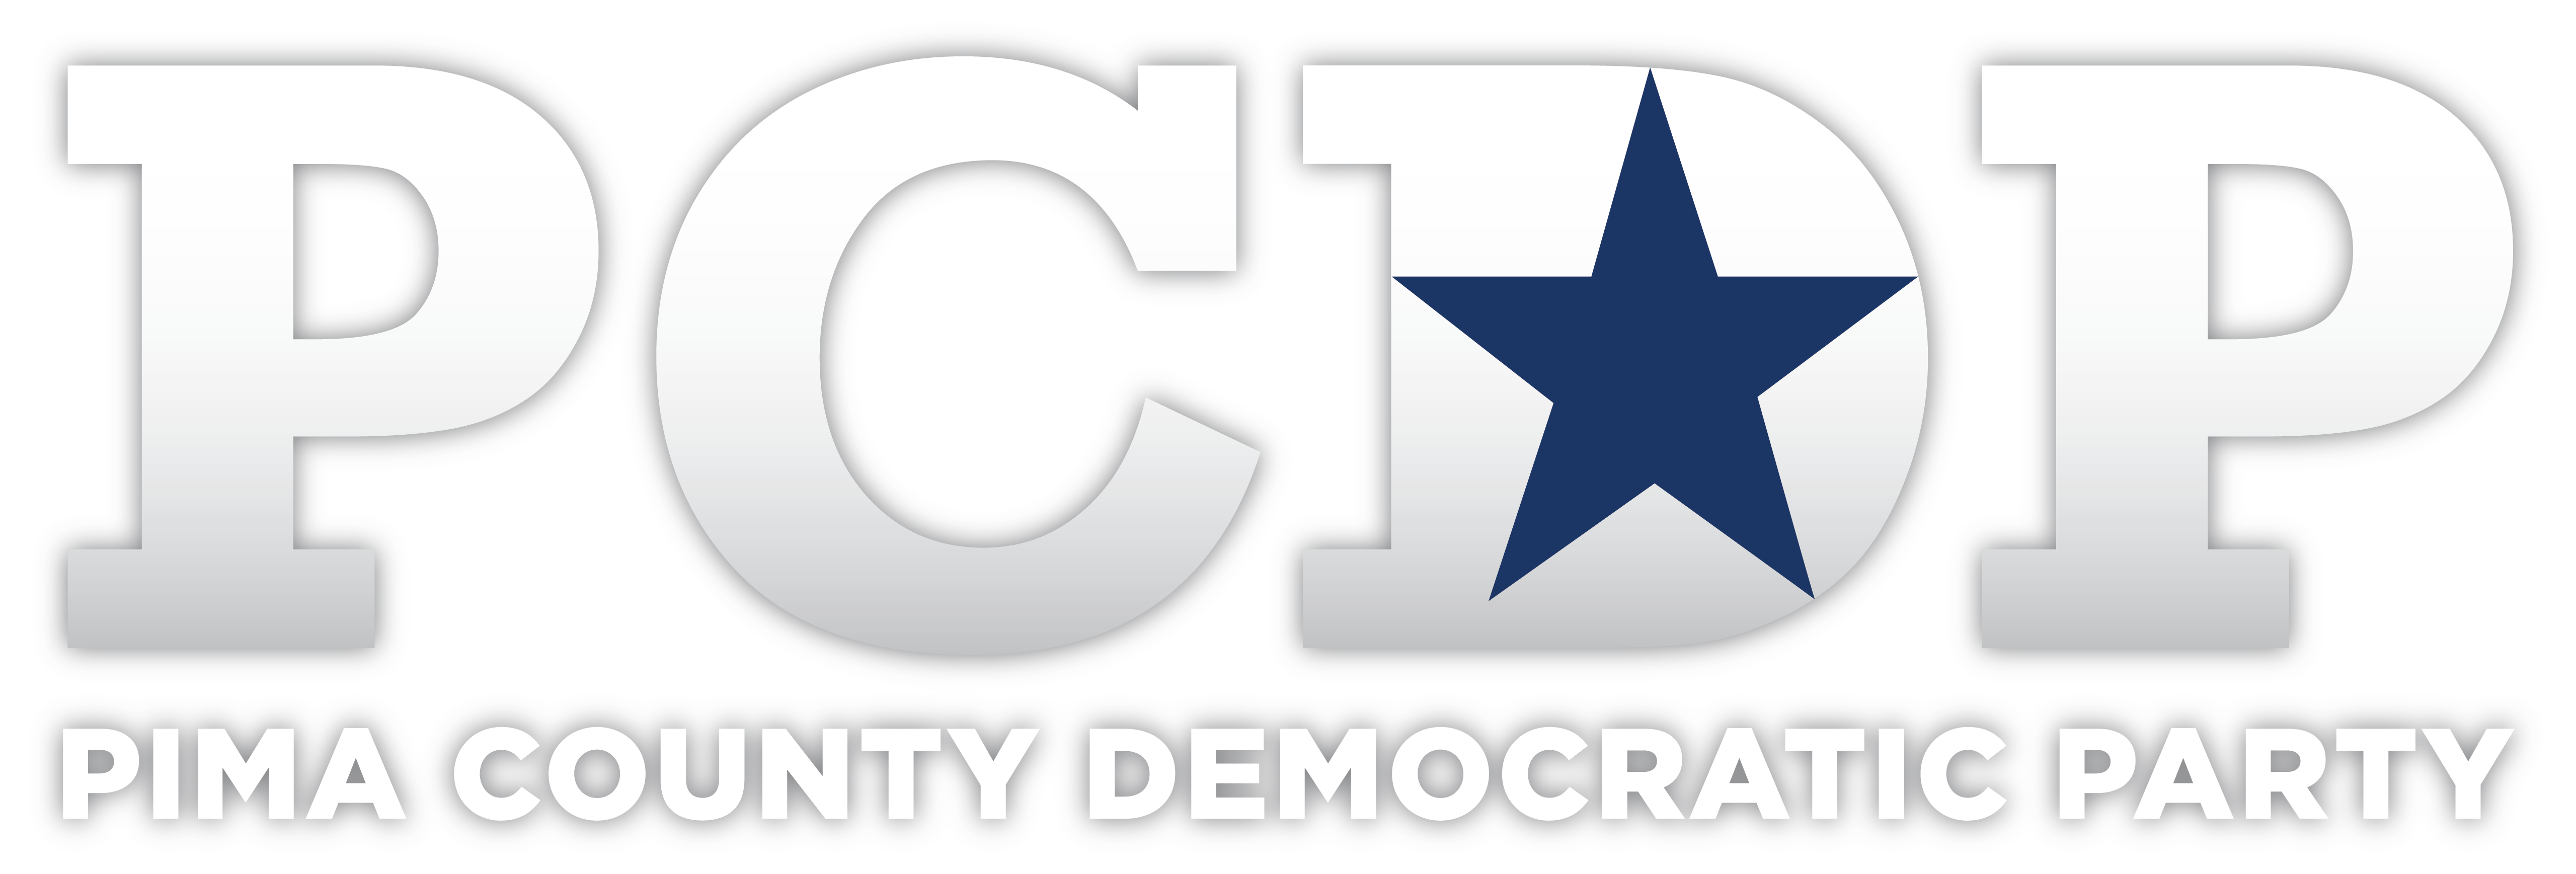 Pima County Democratic Committee